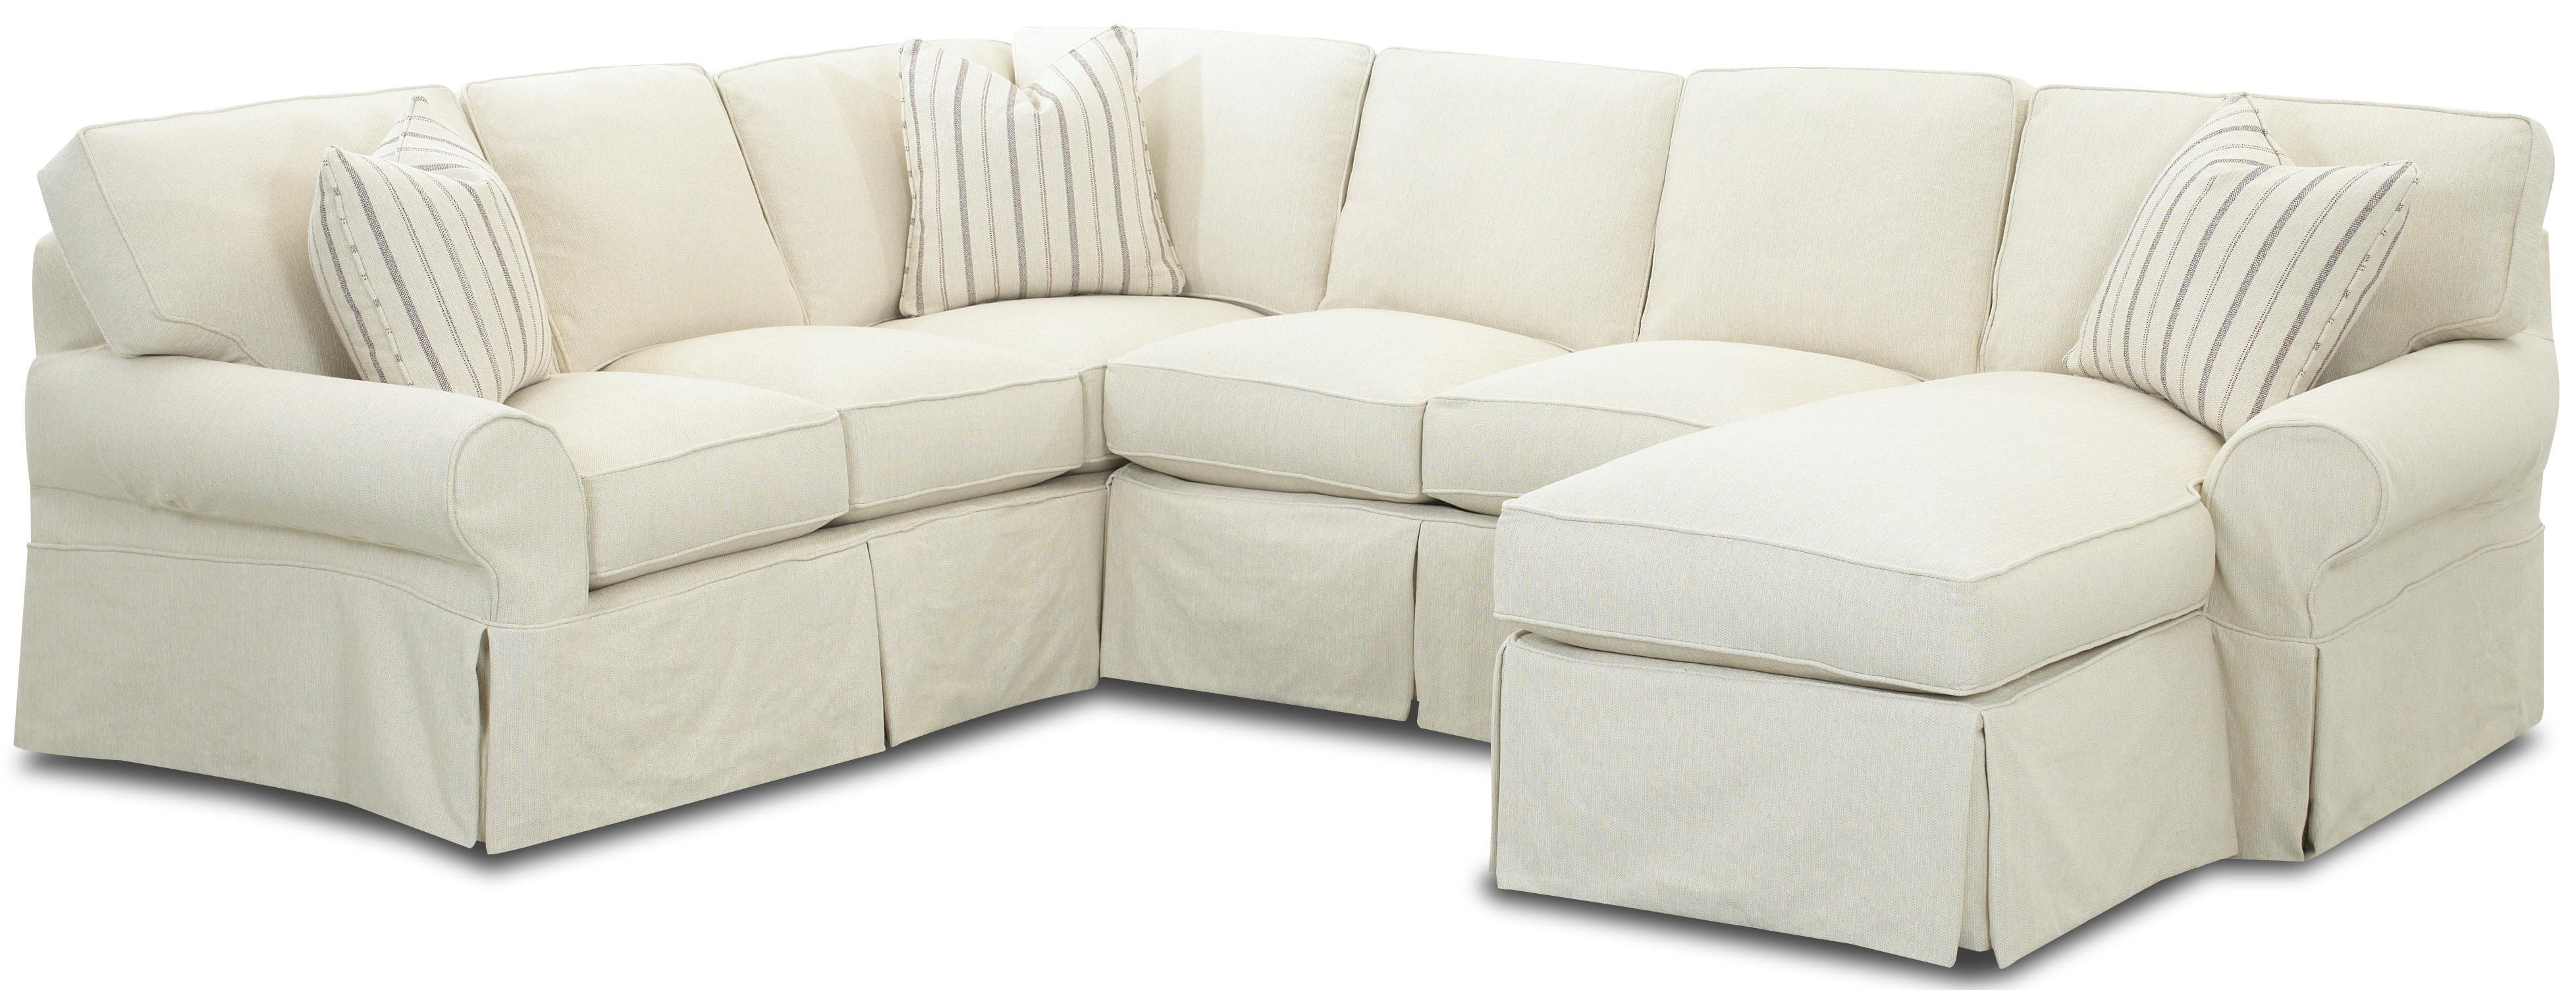 Fresh Diy Slipcover Leather Sofa #13868 Pertaining To Slipcover For Leather Sectional Sofas (Image 1 of 21)